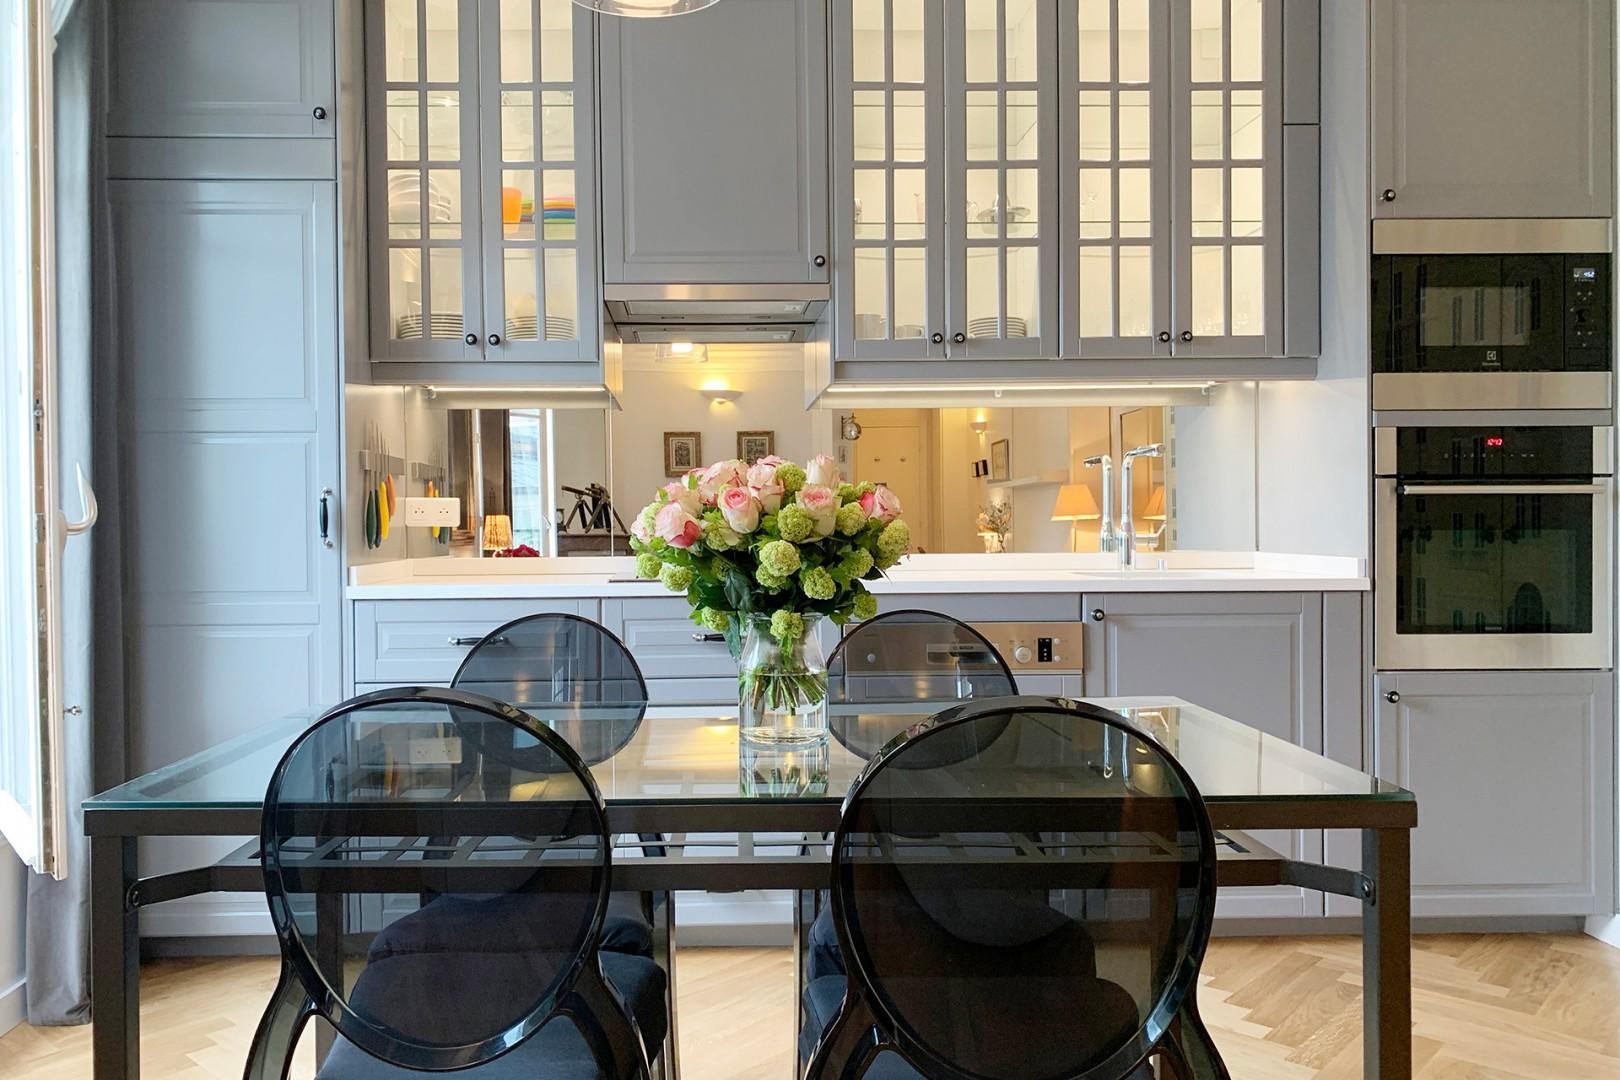 The lovely dining table can seat up to 6 guests, perfect for a home-cooked meal.